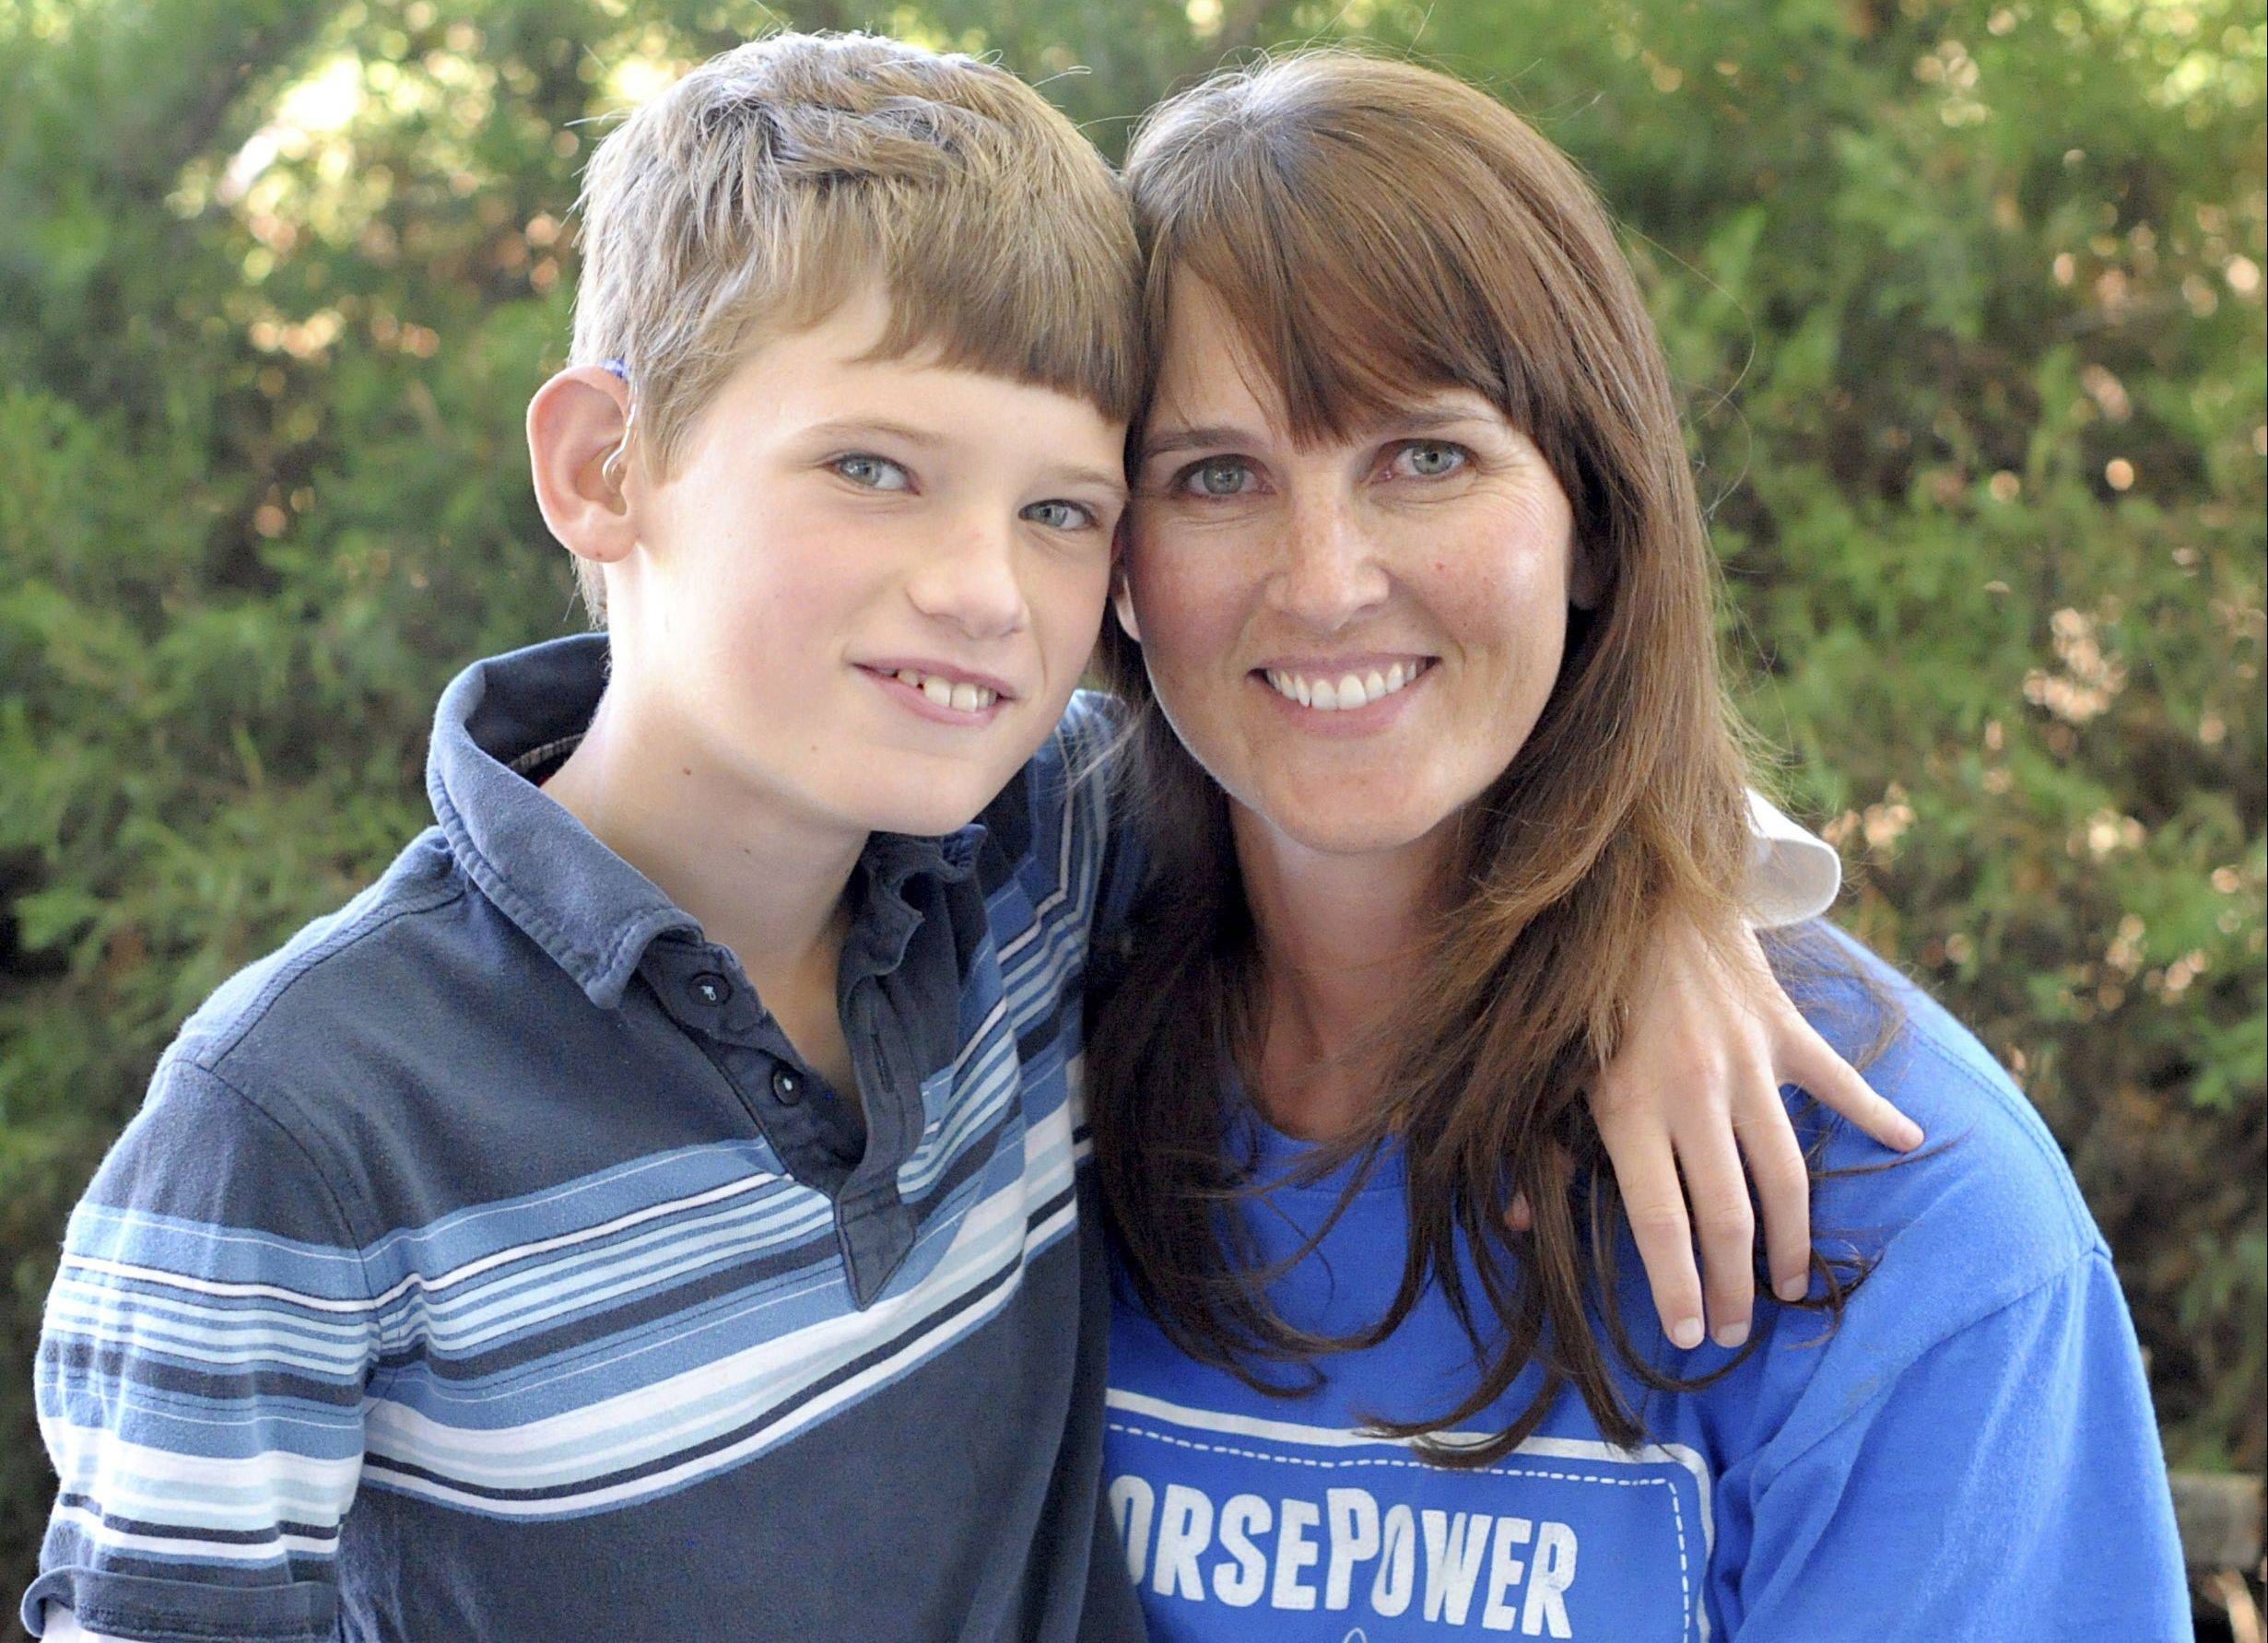 Carrie Capes of Maple Park was motivated to start HorsePower Therapeutic Riding after her son, Max, 12, starting therapeutic riding four years ago. Max has cognitive impairment, is hearing-impaired, has fine and gross motor skill delays, and is unable to speak.